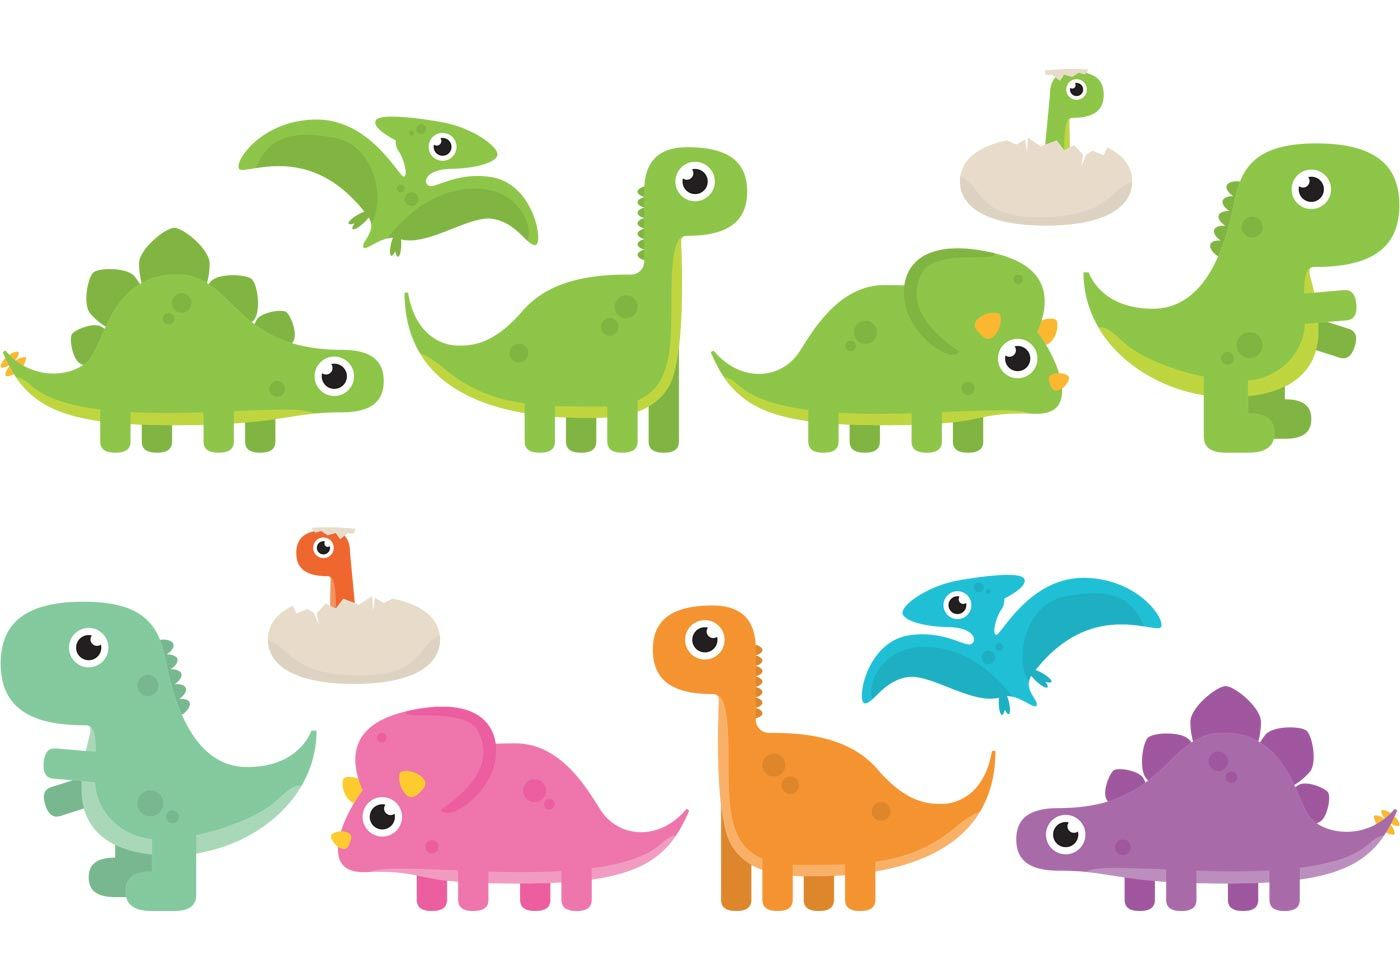 Image of: Baby Cartoon Dinosaur Vectors Pinterest Cartoon Dinosaur Vectors Dinosaurs Pinterest Cartoon Dinosaur